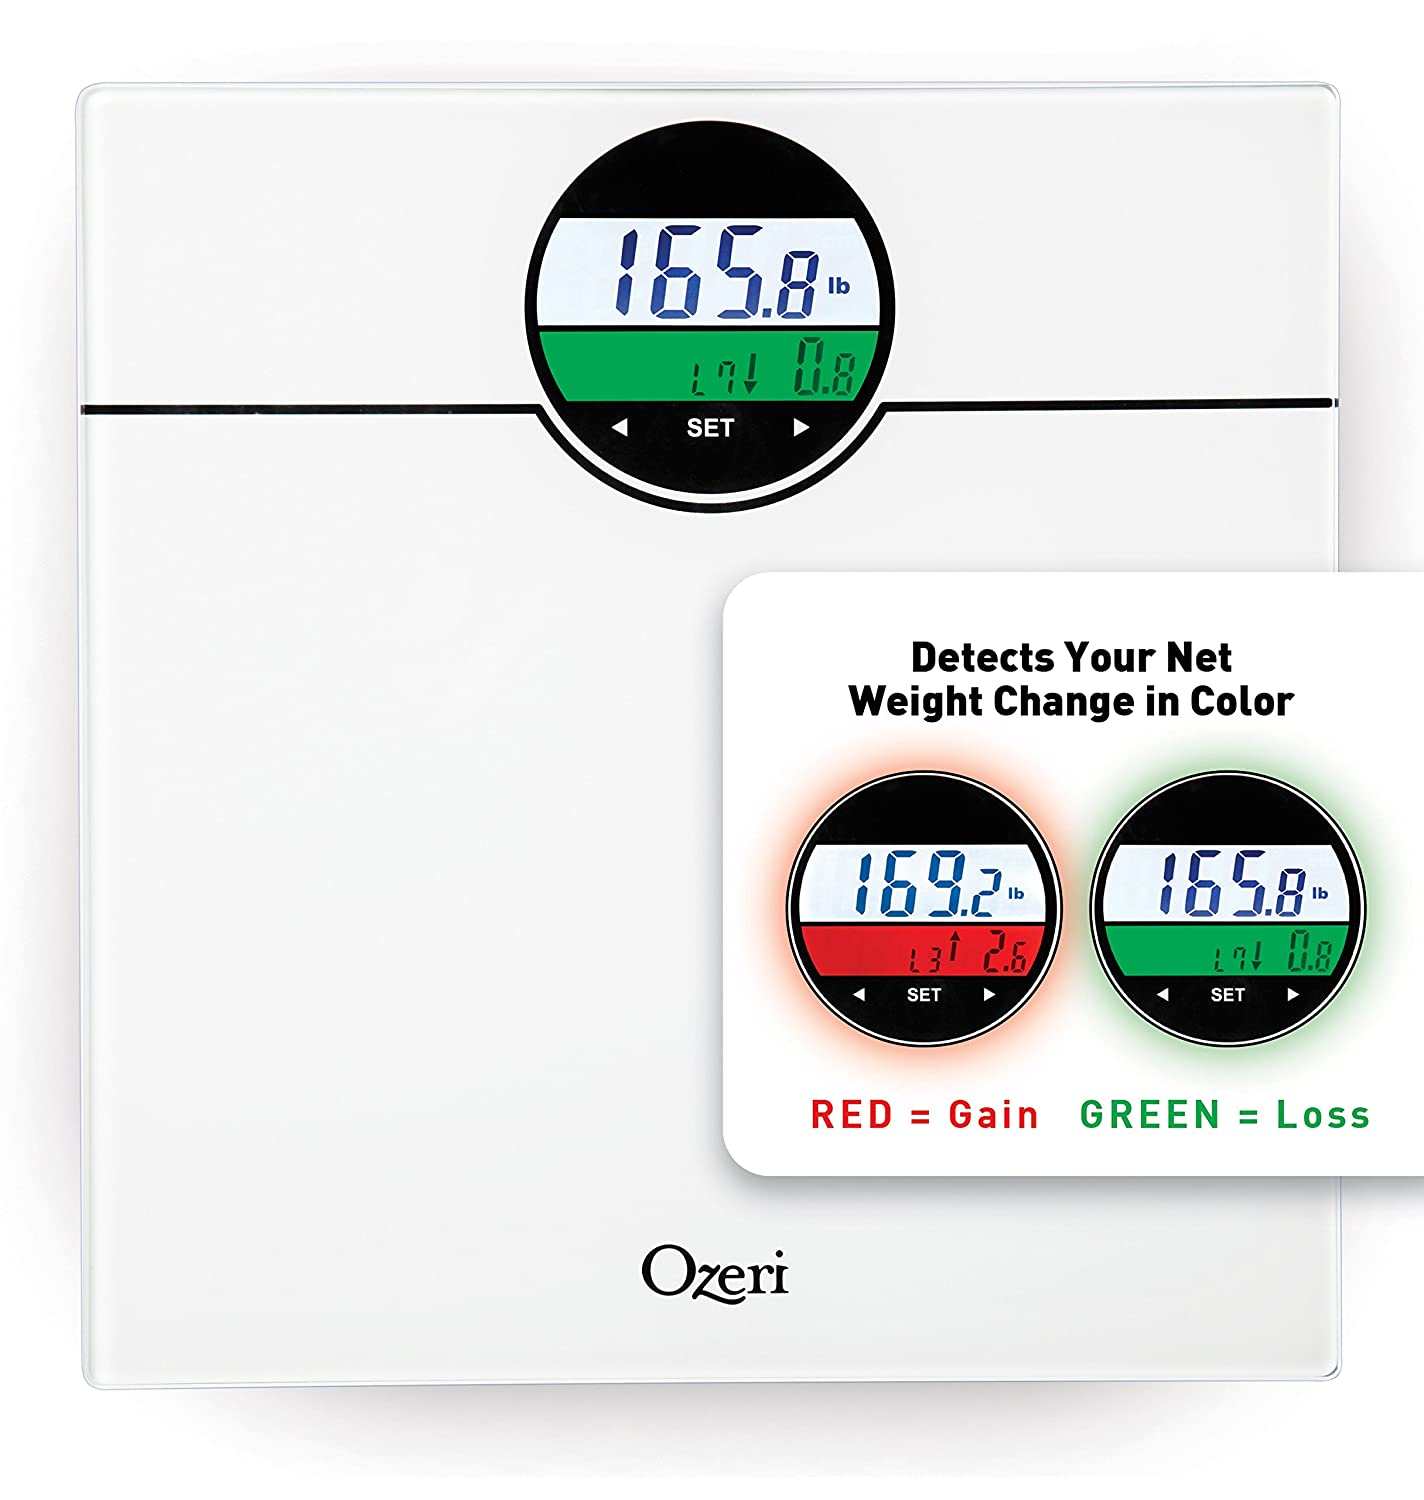 Bmi bathroom scales - Amazon Com Ozeri Zb21 W Weightmaster 400 Lbs Digital Bath Scale With Bmi And Weight Change Detection White Health Personal Care